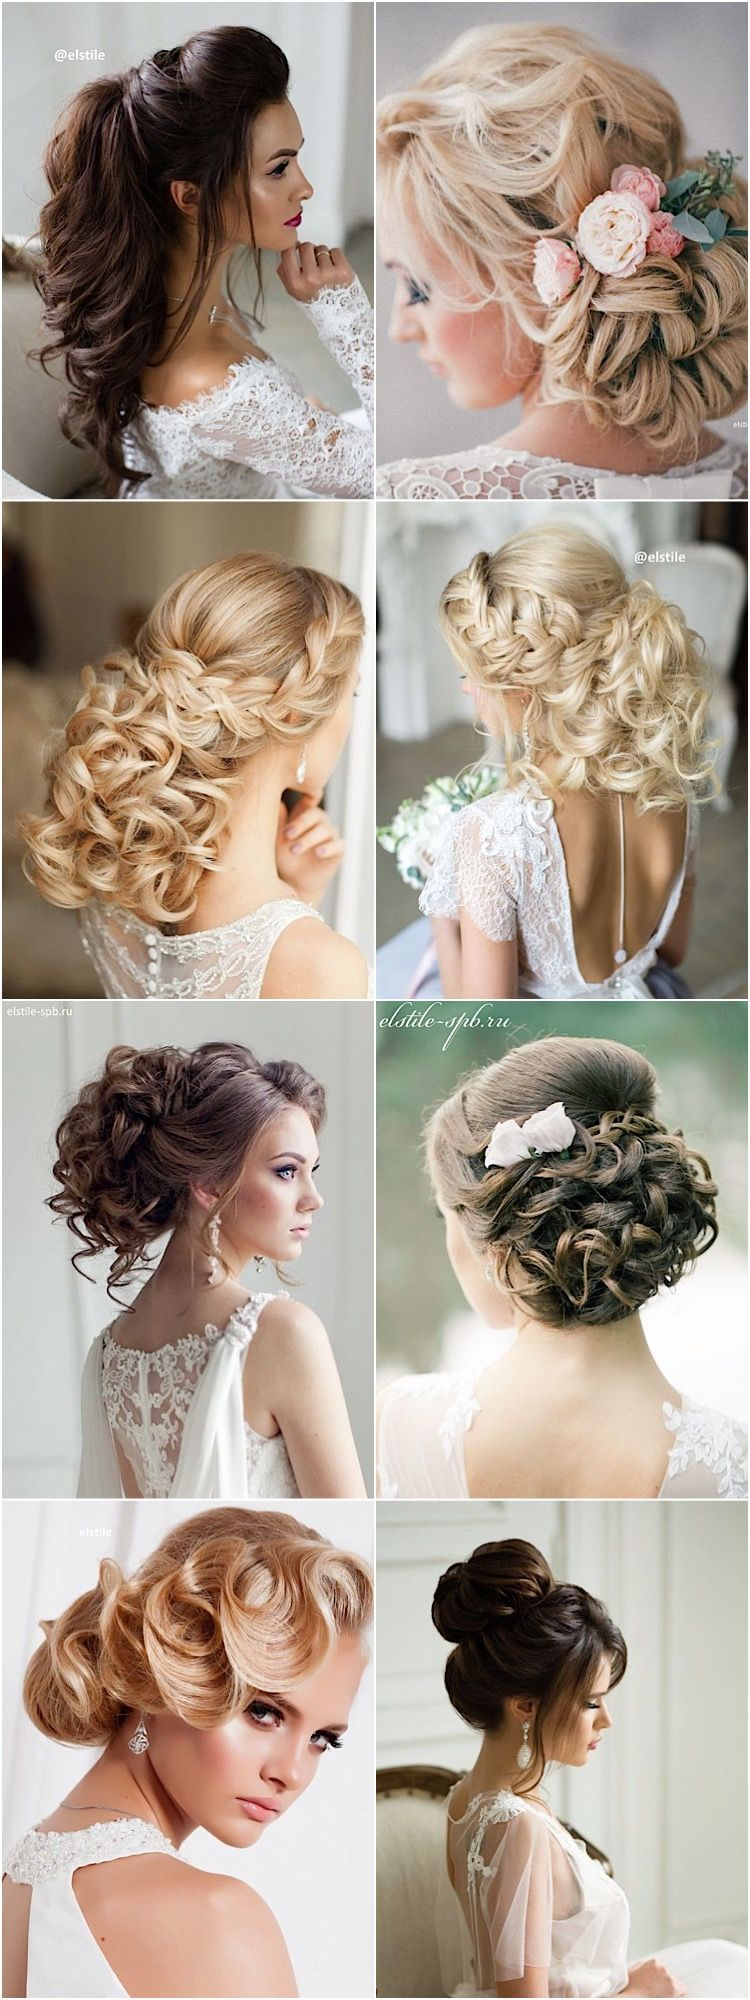 how much do wedding day hair and make-up cost? | bride hair